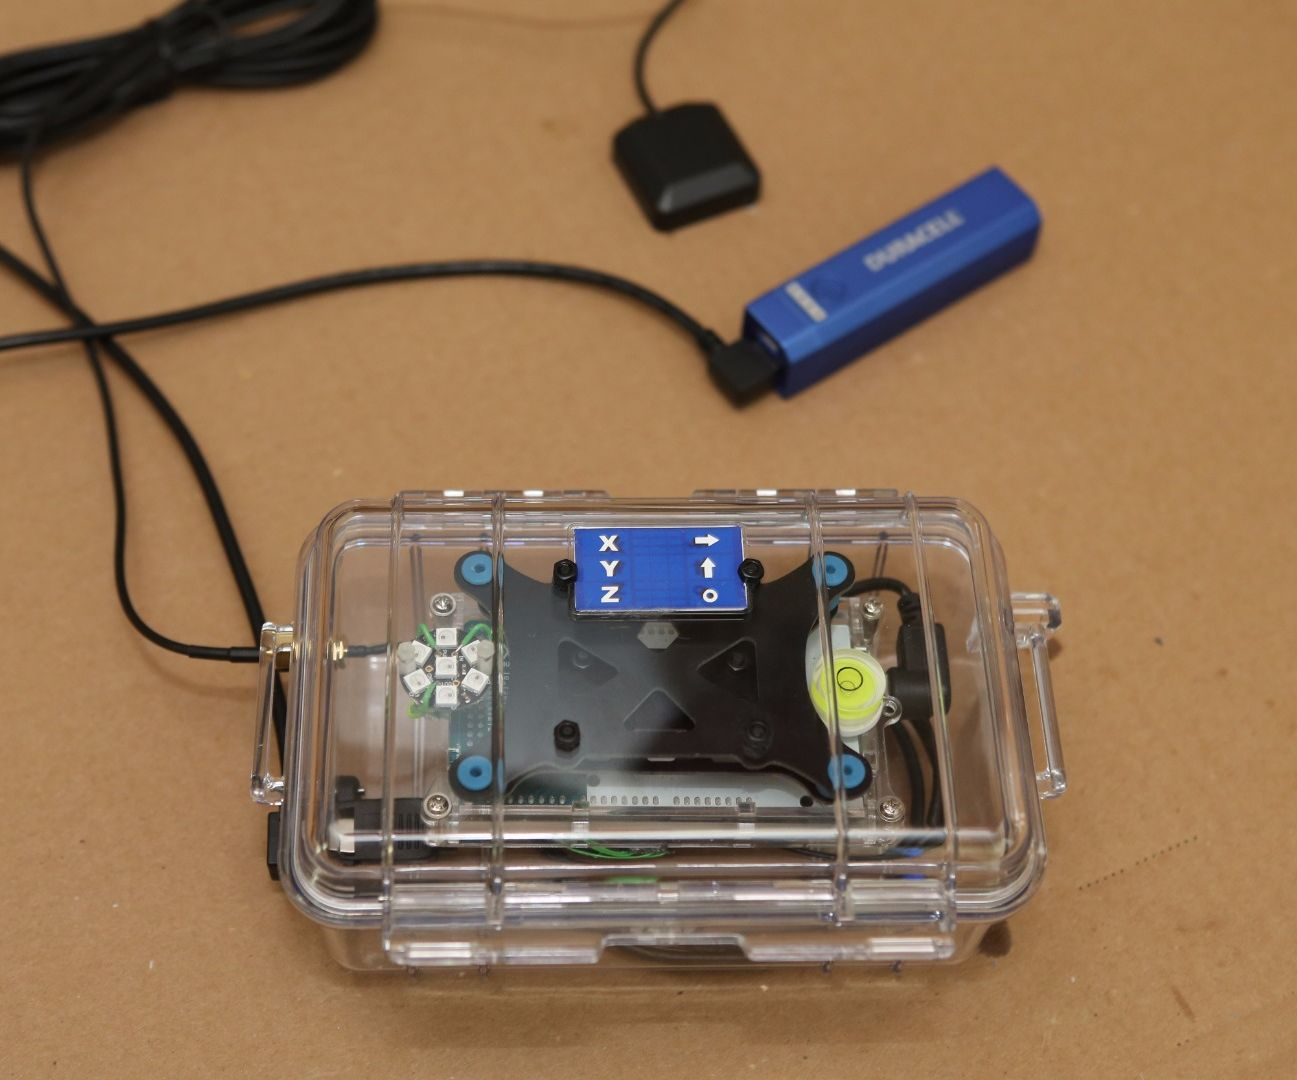 Build a 'blackbox' datalogger for adding on screen display gauges to your videos